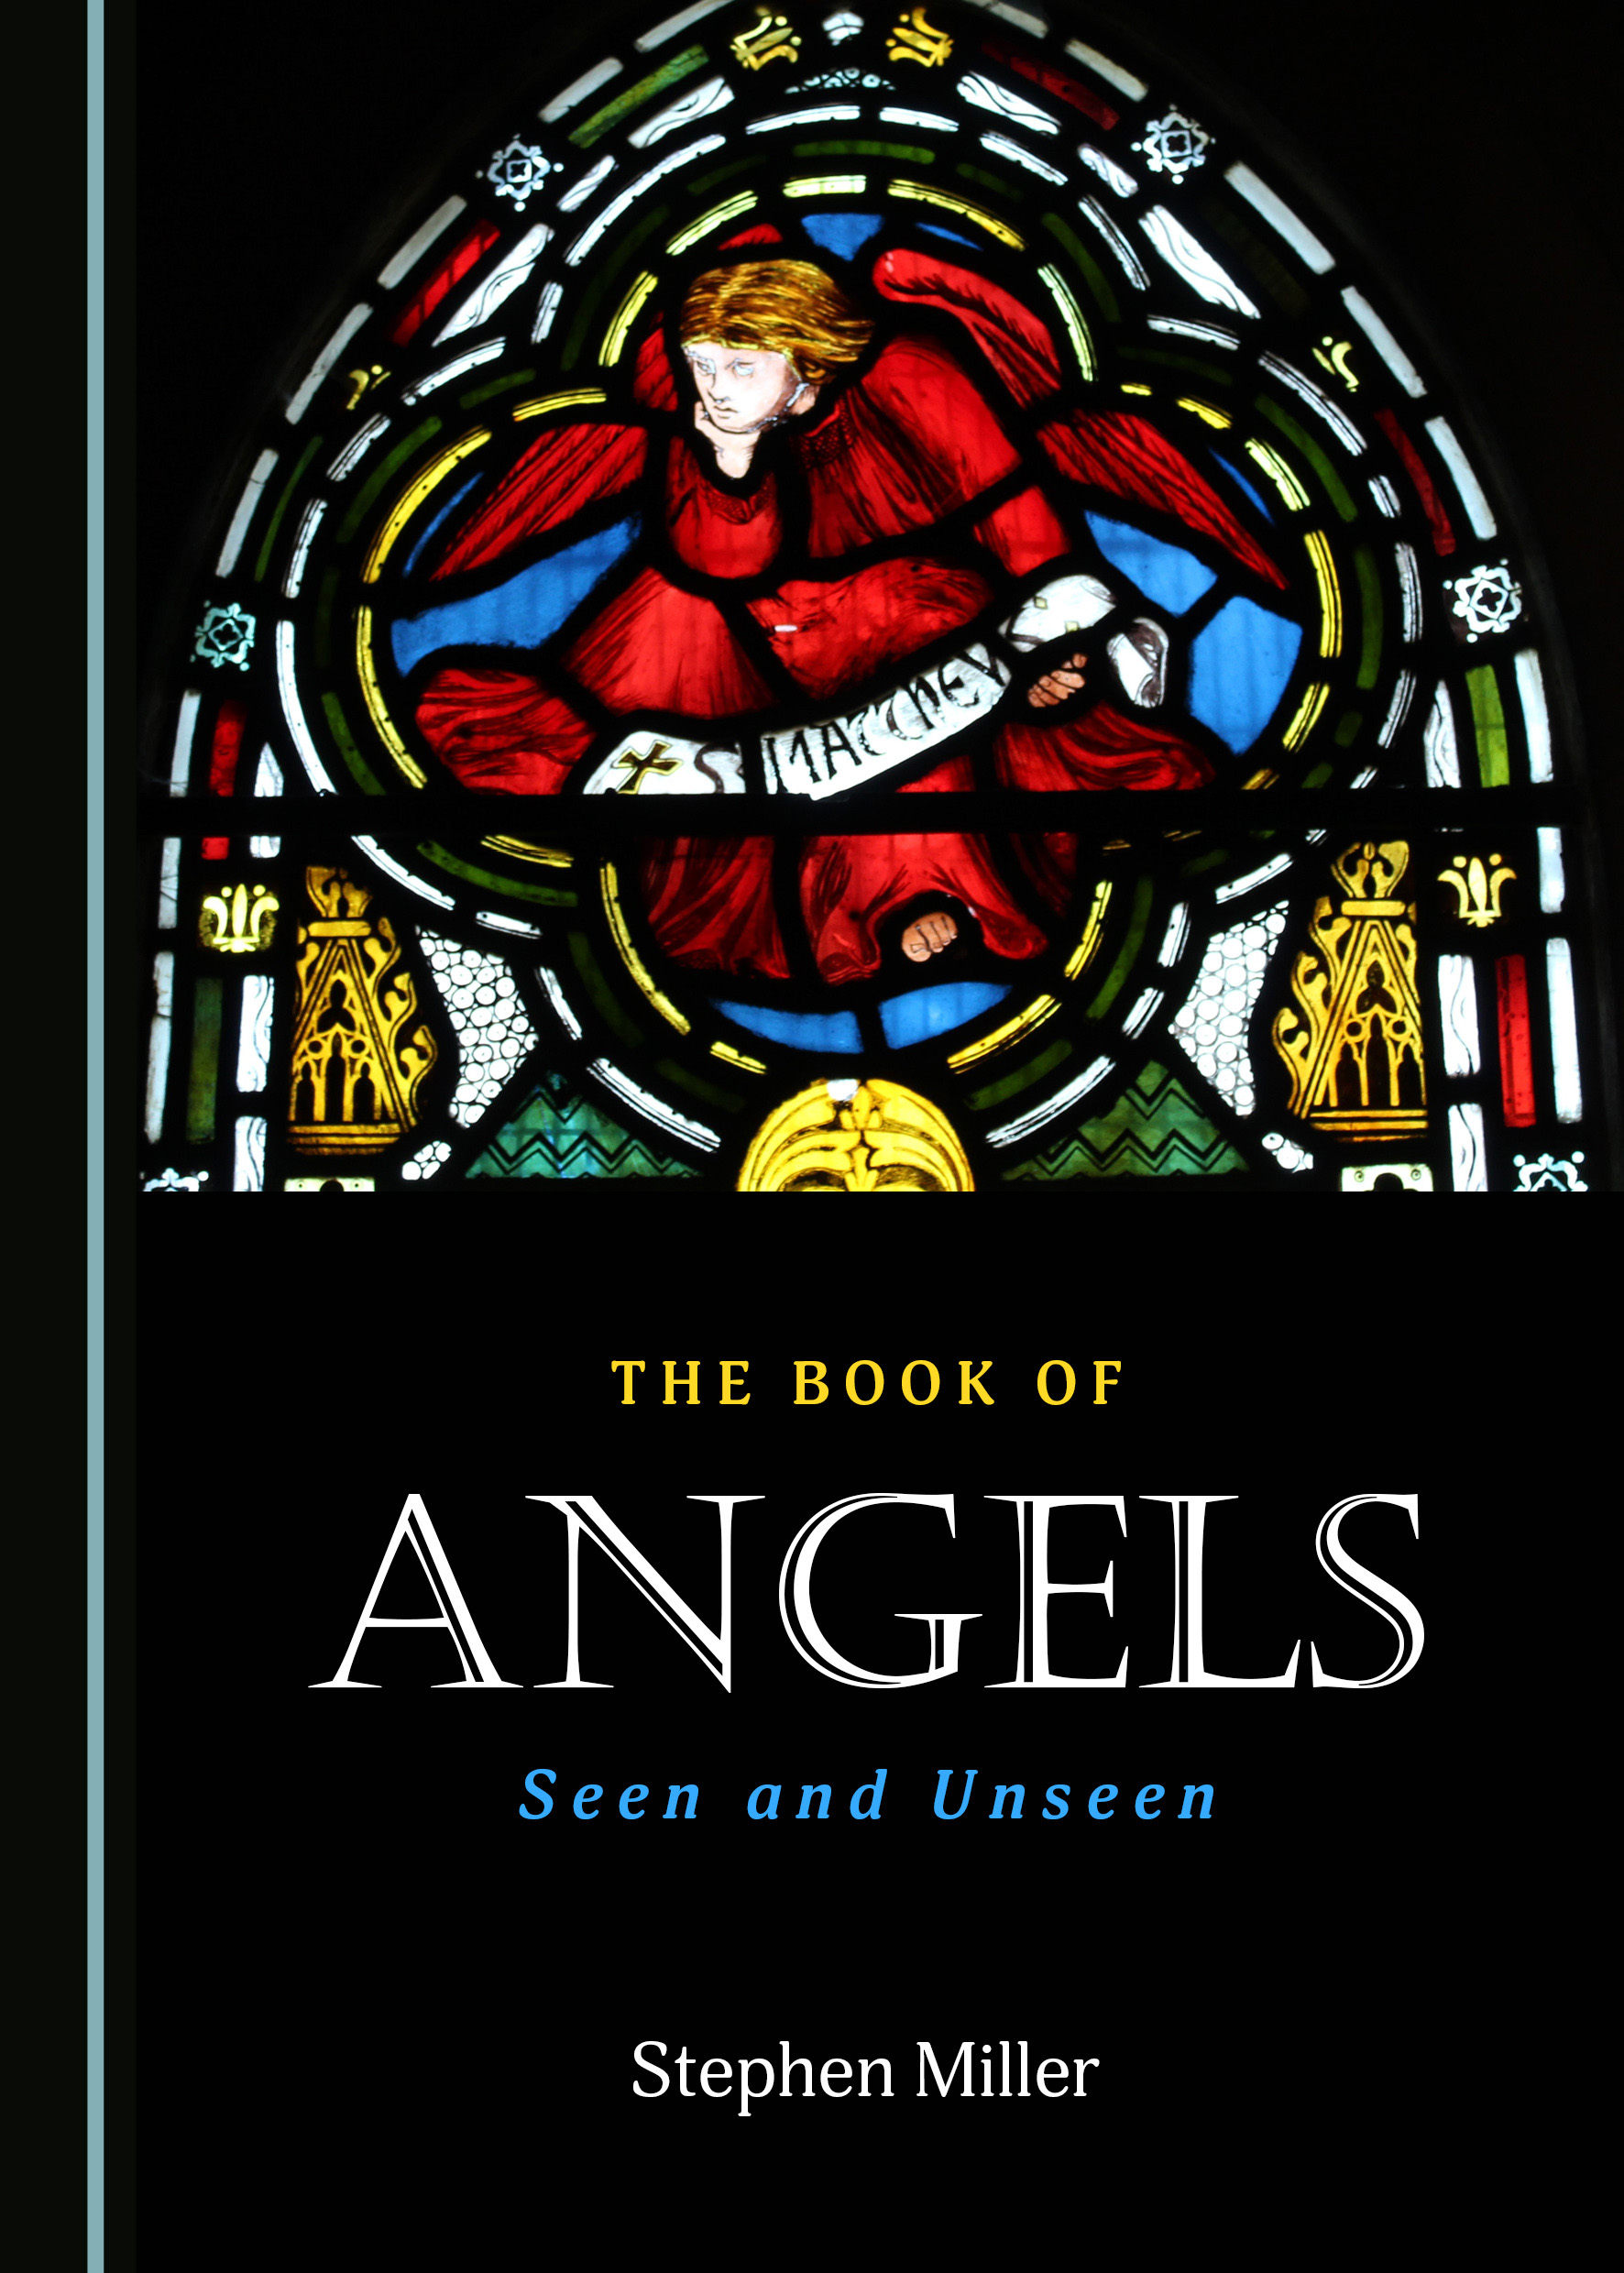 The Book of Angels: Seen and Unseen